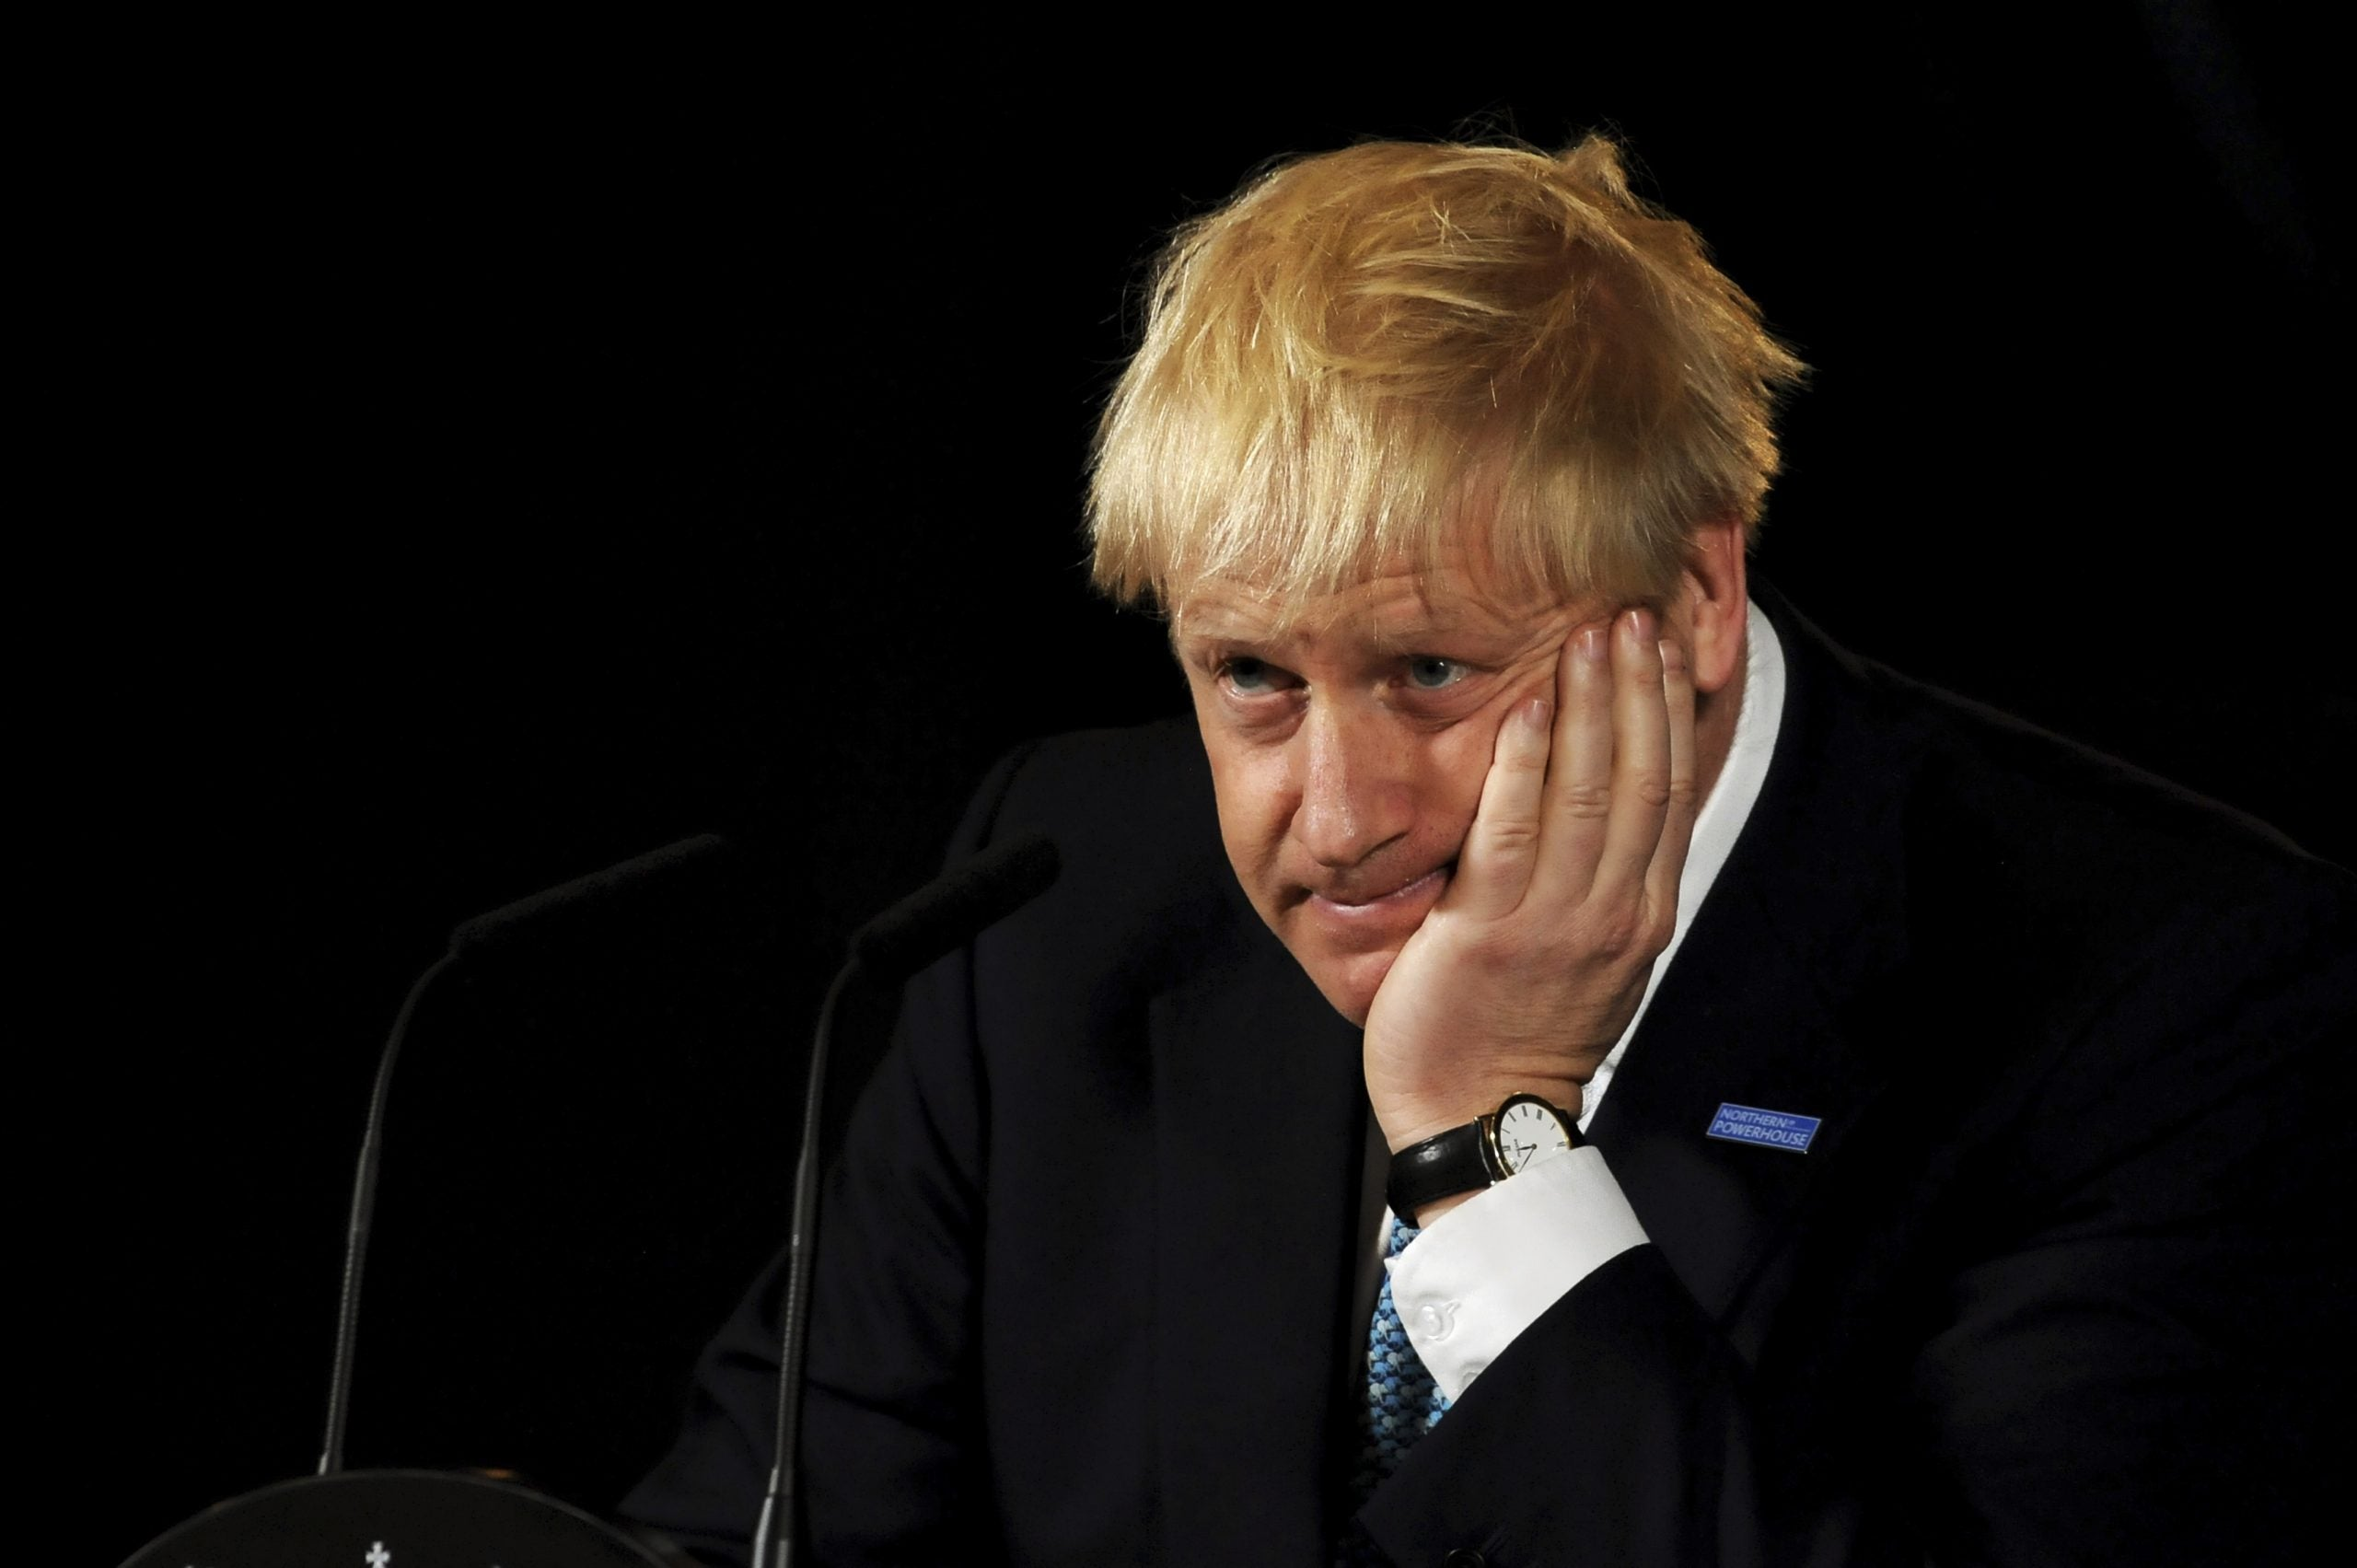 Being prime minister is too big a job for anybody – let alone a blundering golden-haired oaf